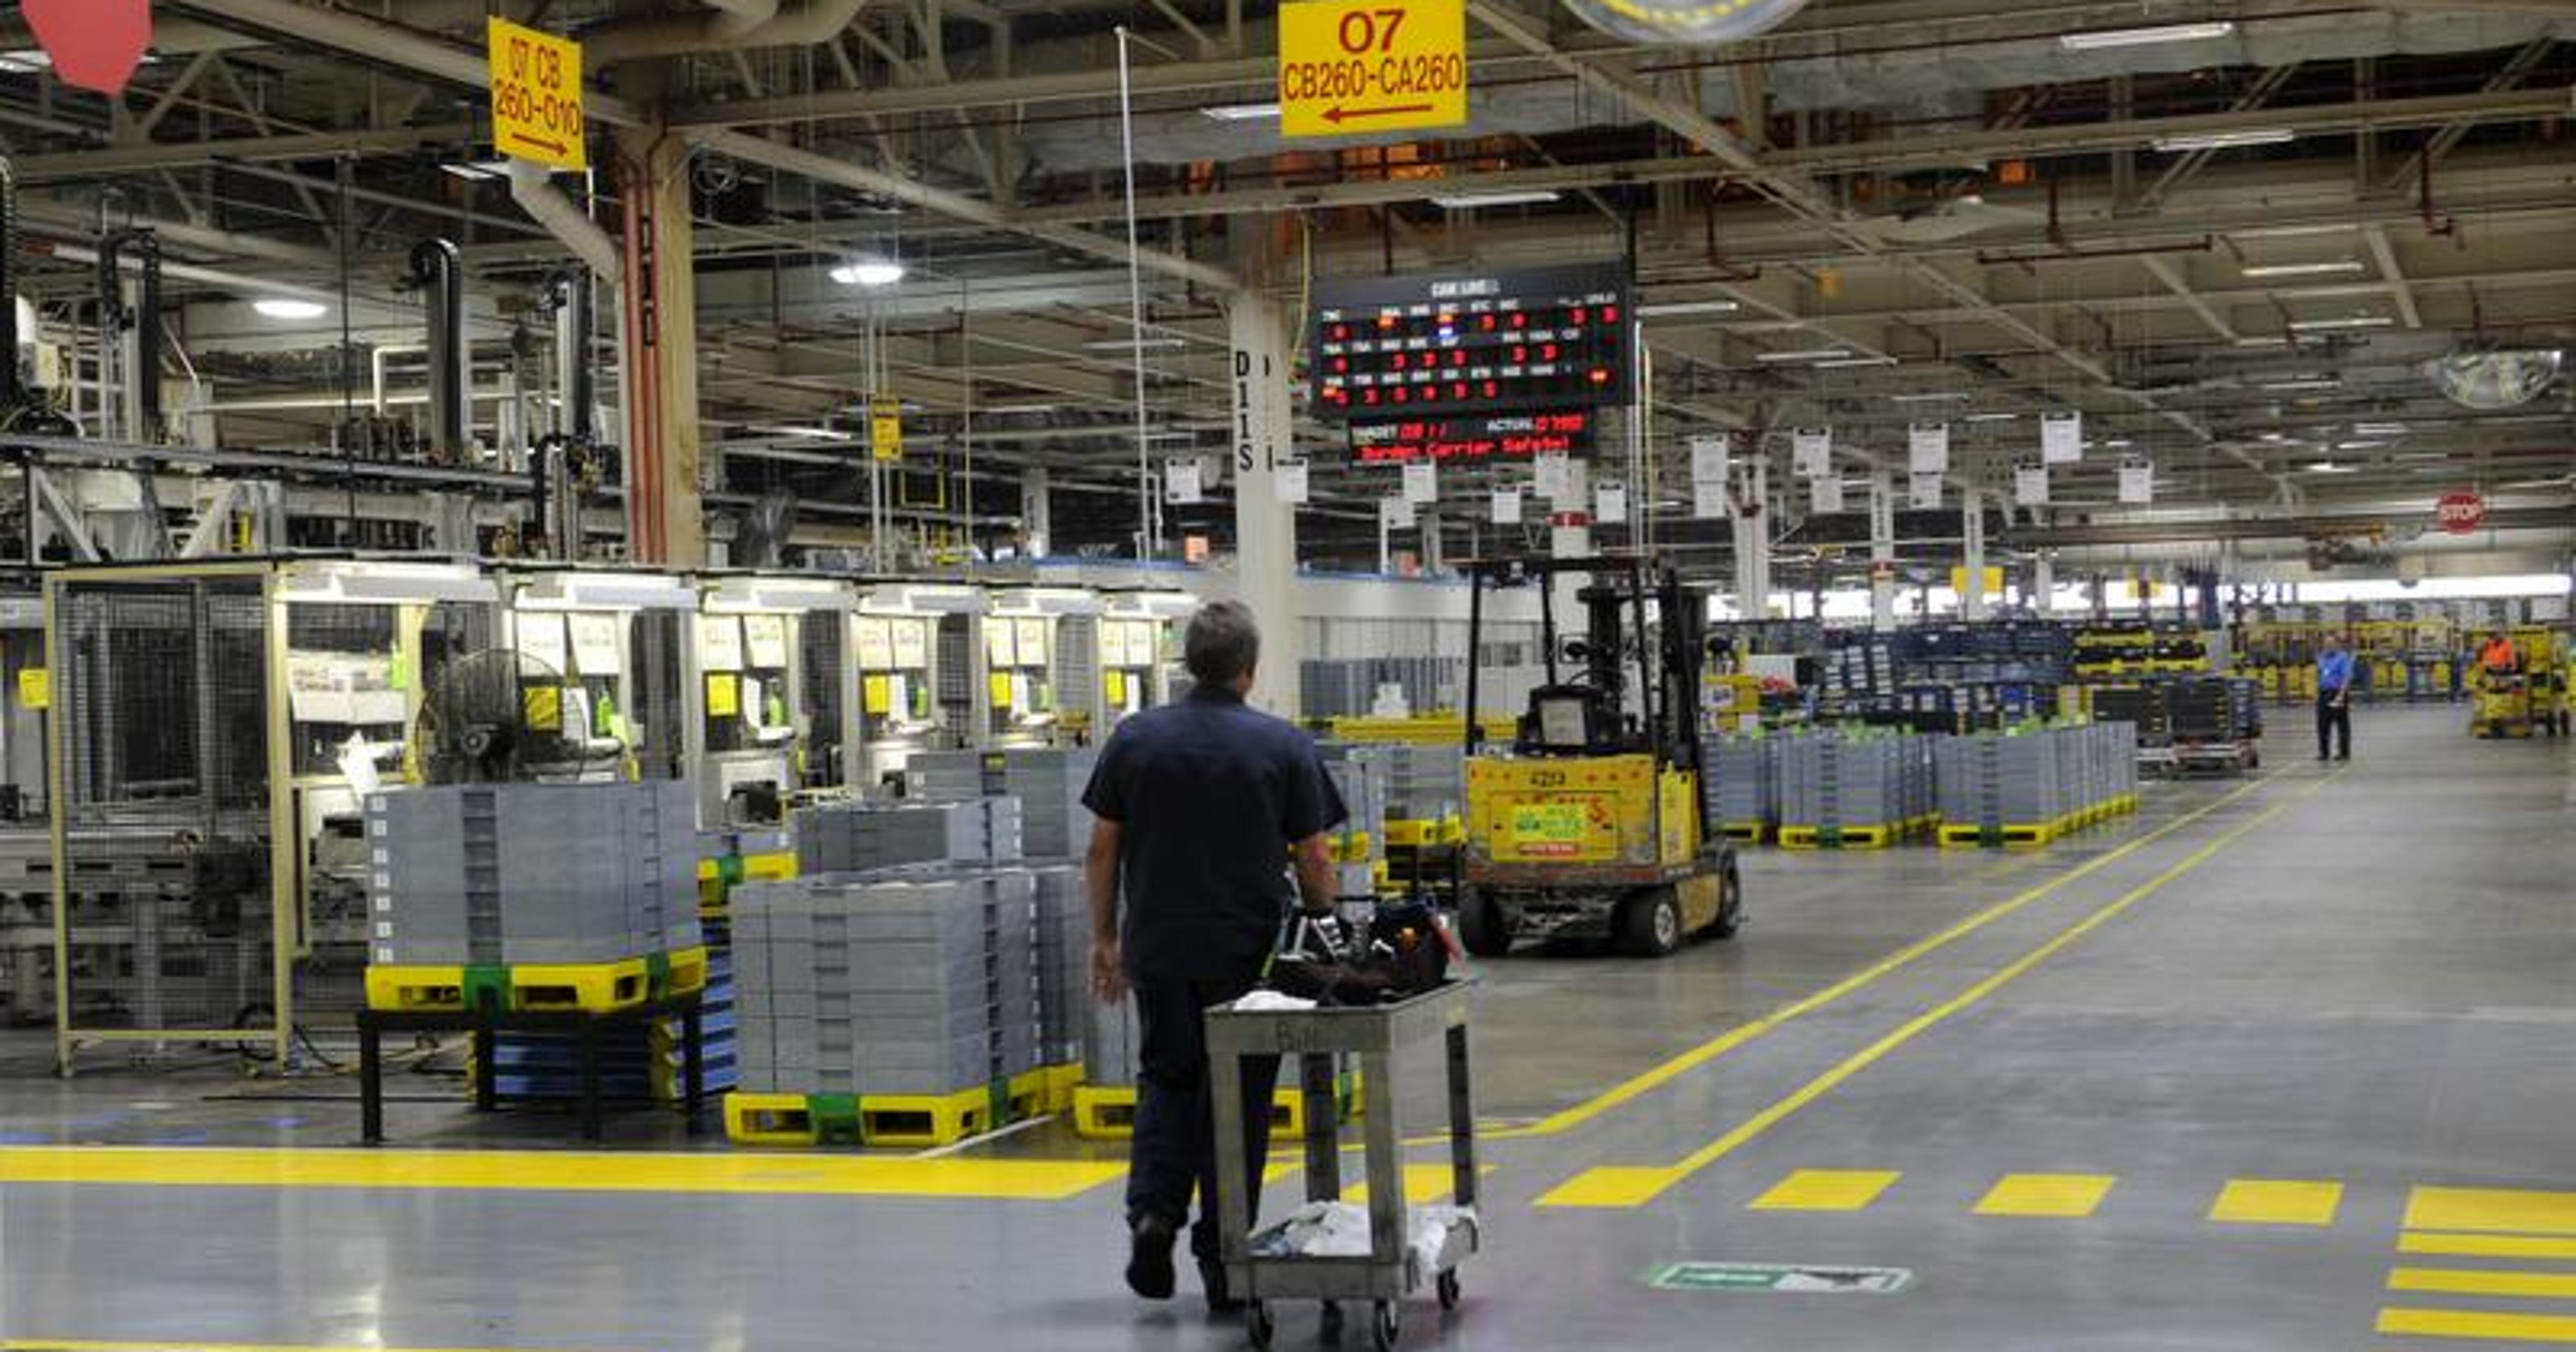 Gm Announces New Engines To Be Built In 4 Countries Ecotec Engine